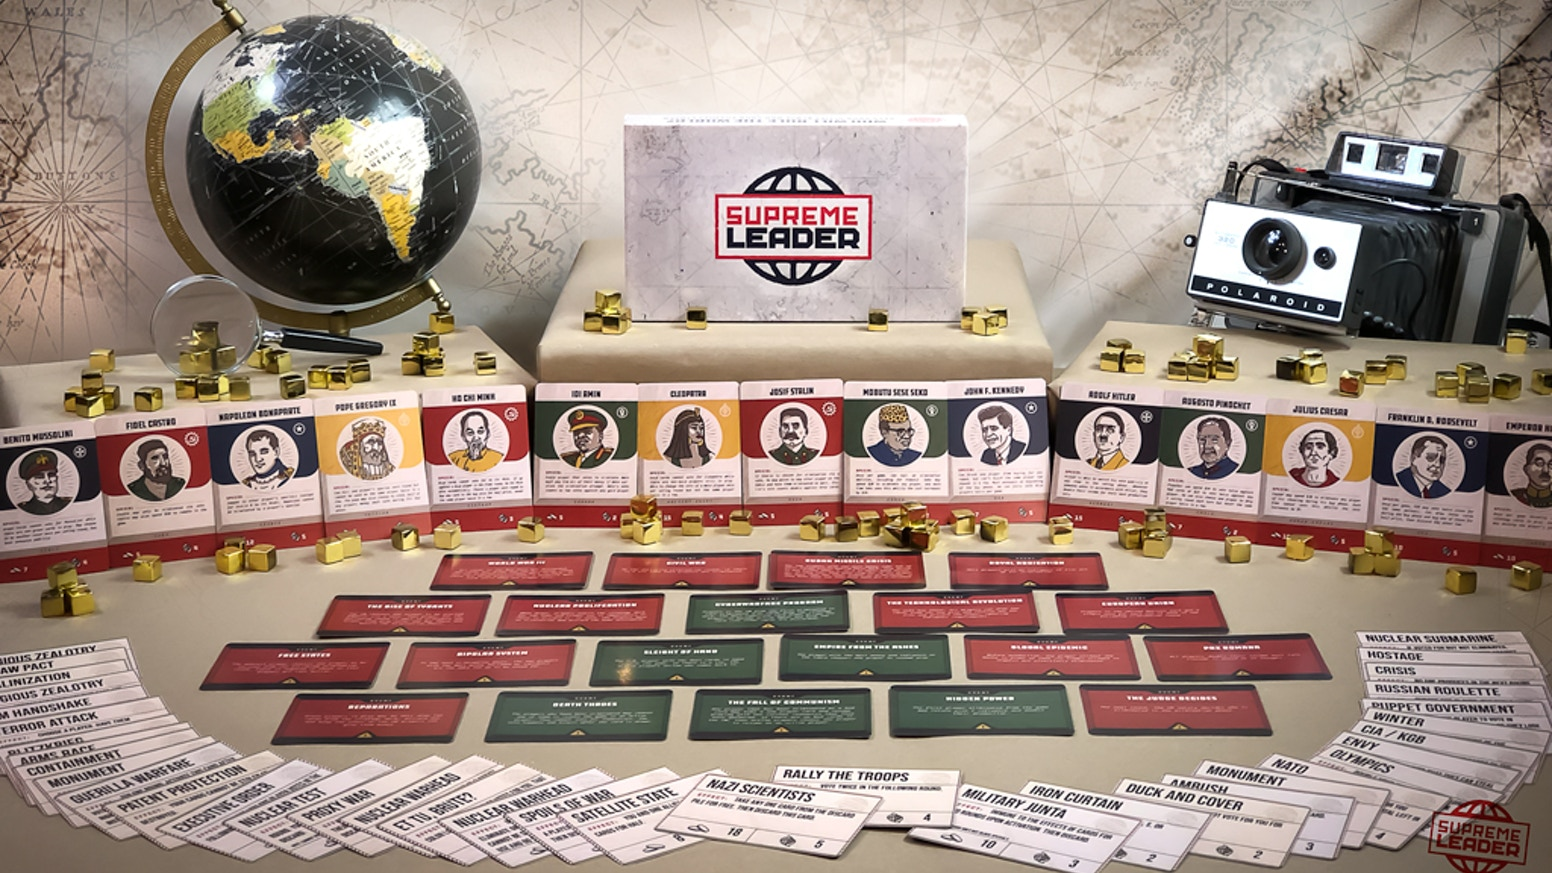 Supreme Leader is a game of politics and diplomacy that explores power dynamics and political struggles in the comfort of the home.